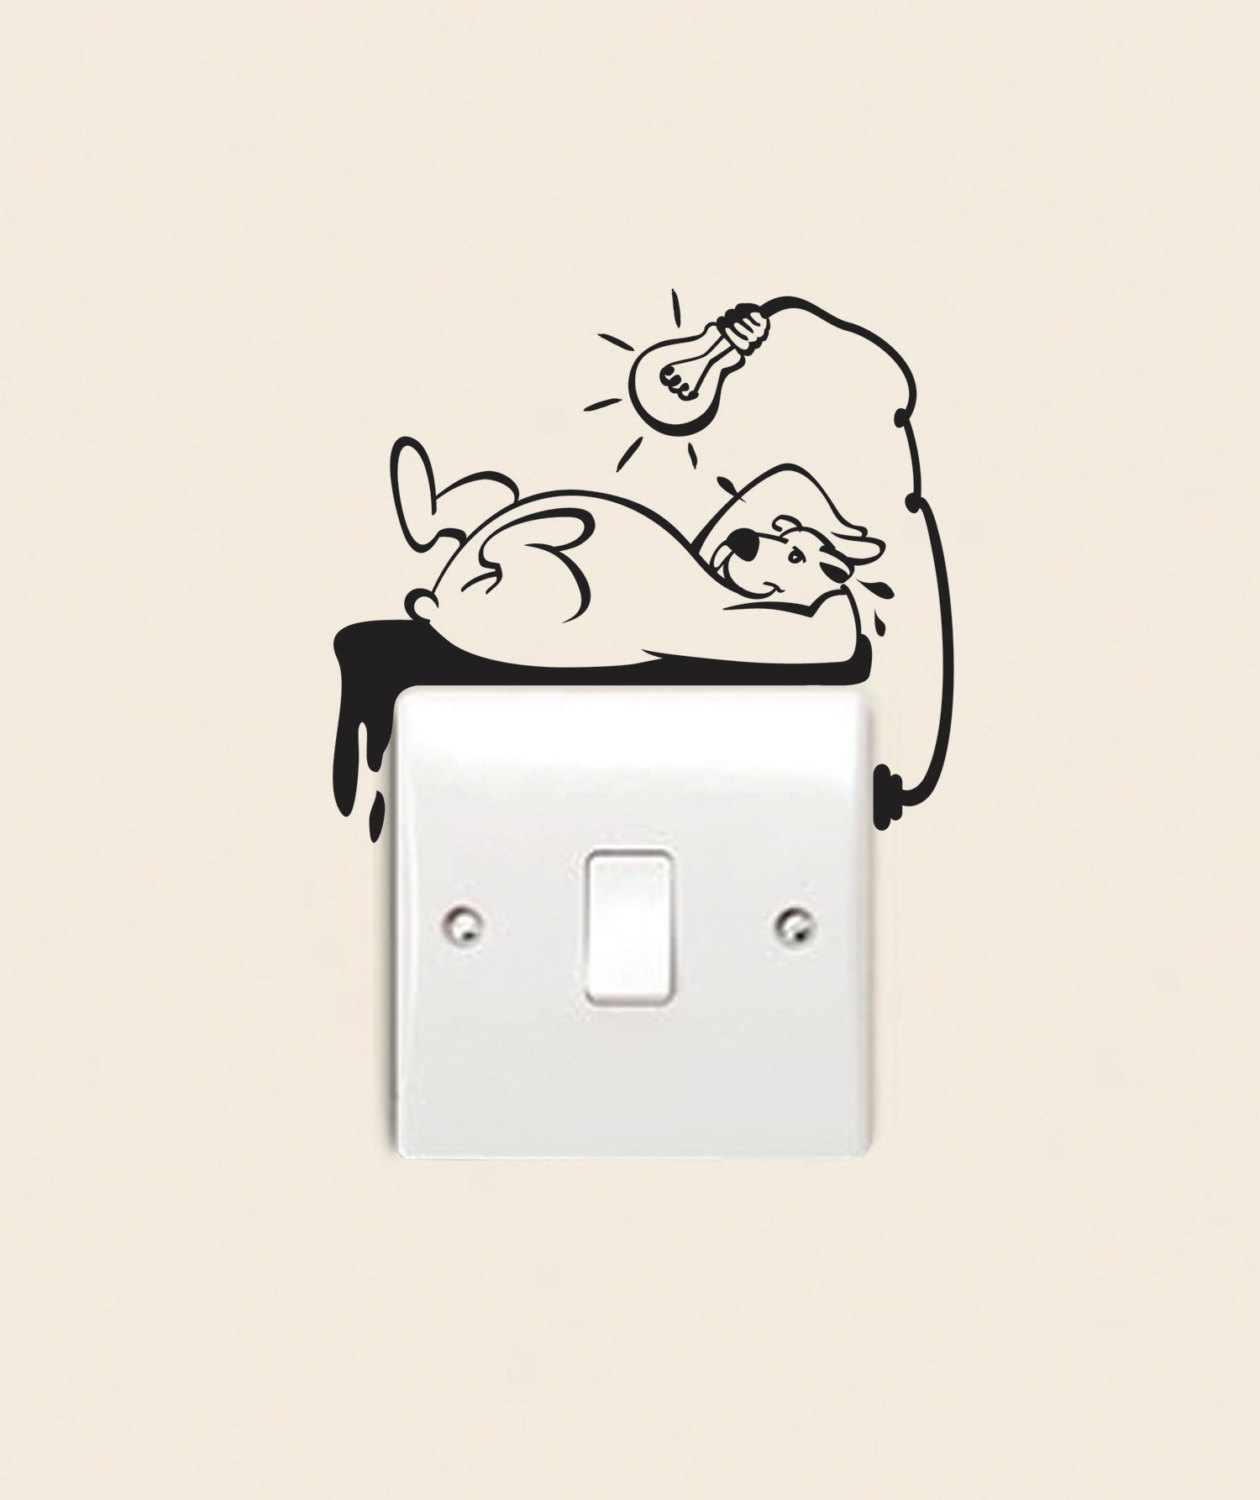 Wall Light With Switch Nz : Polar Bear -Think Eco Decal Sticker for Wall Light Switch and oder. Felt